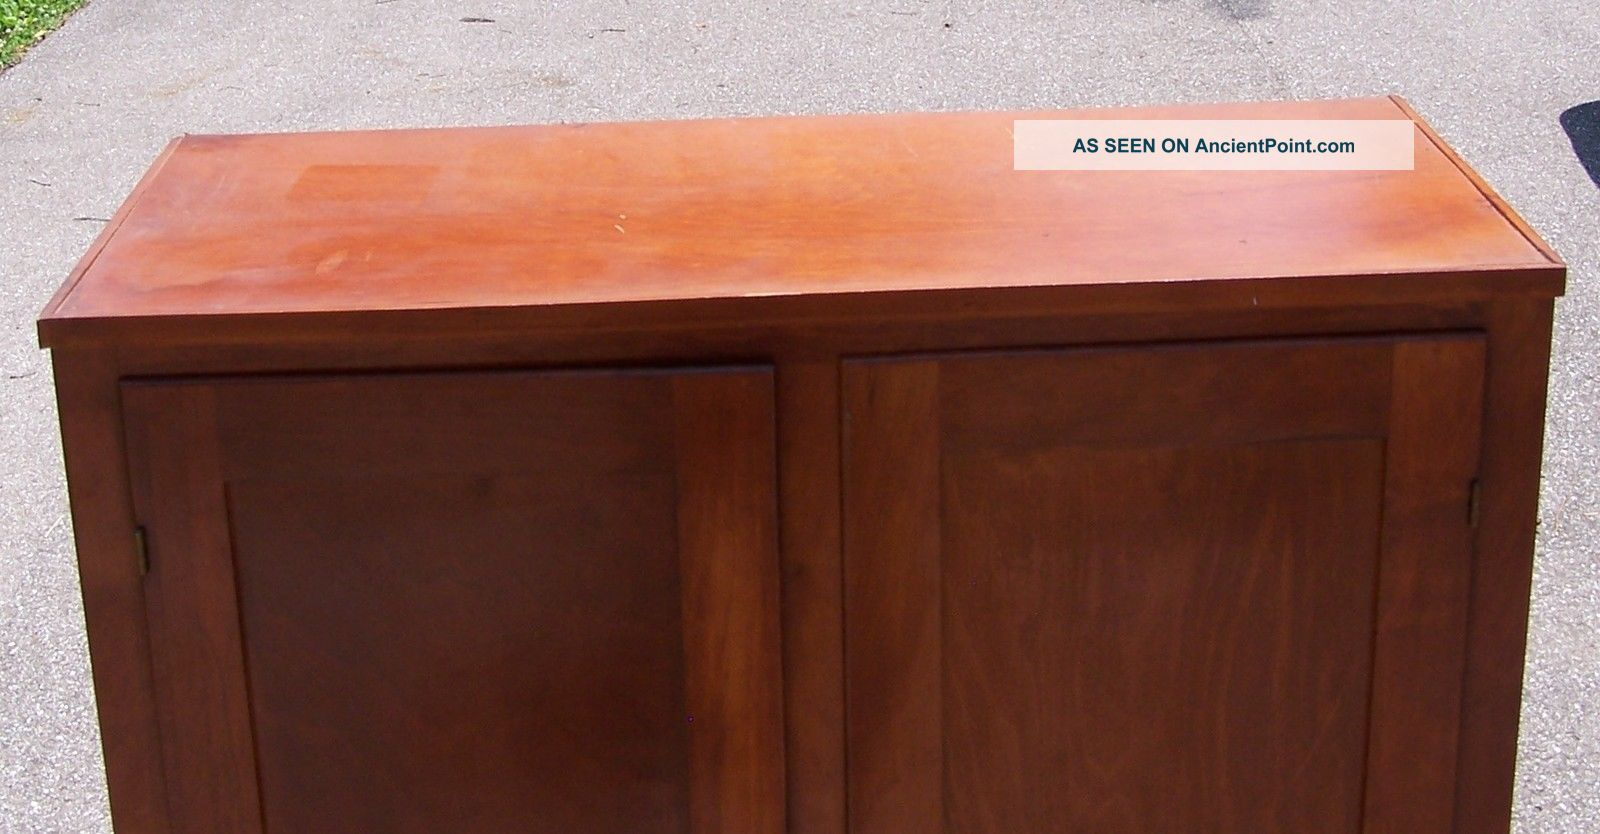 Superb img of Wood Gun Cabinet With Key It Will Lock Post 1950 photo 6 with #AE481D color and 1600x834 pixels